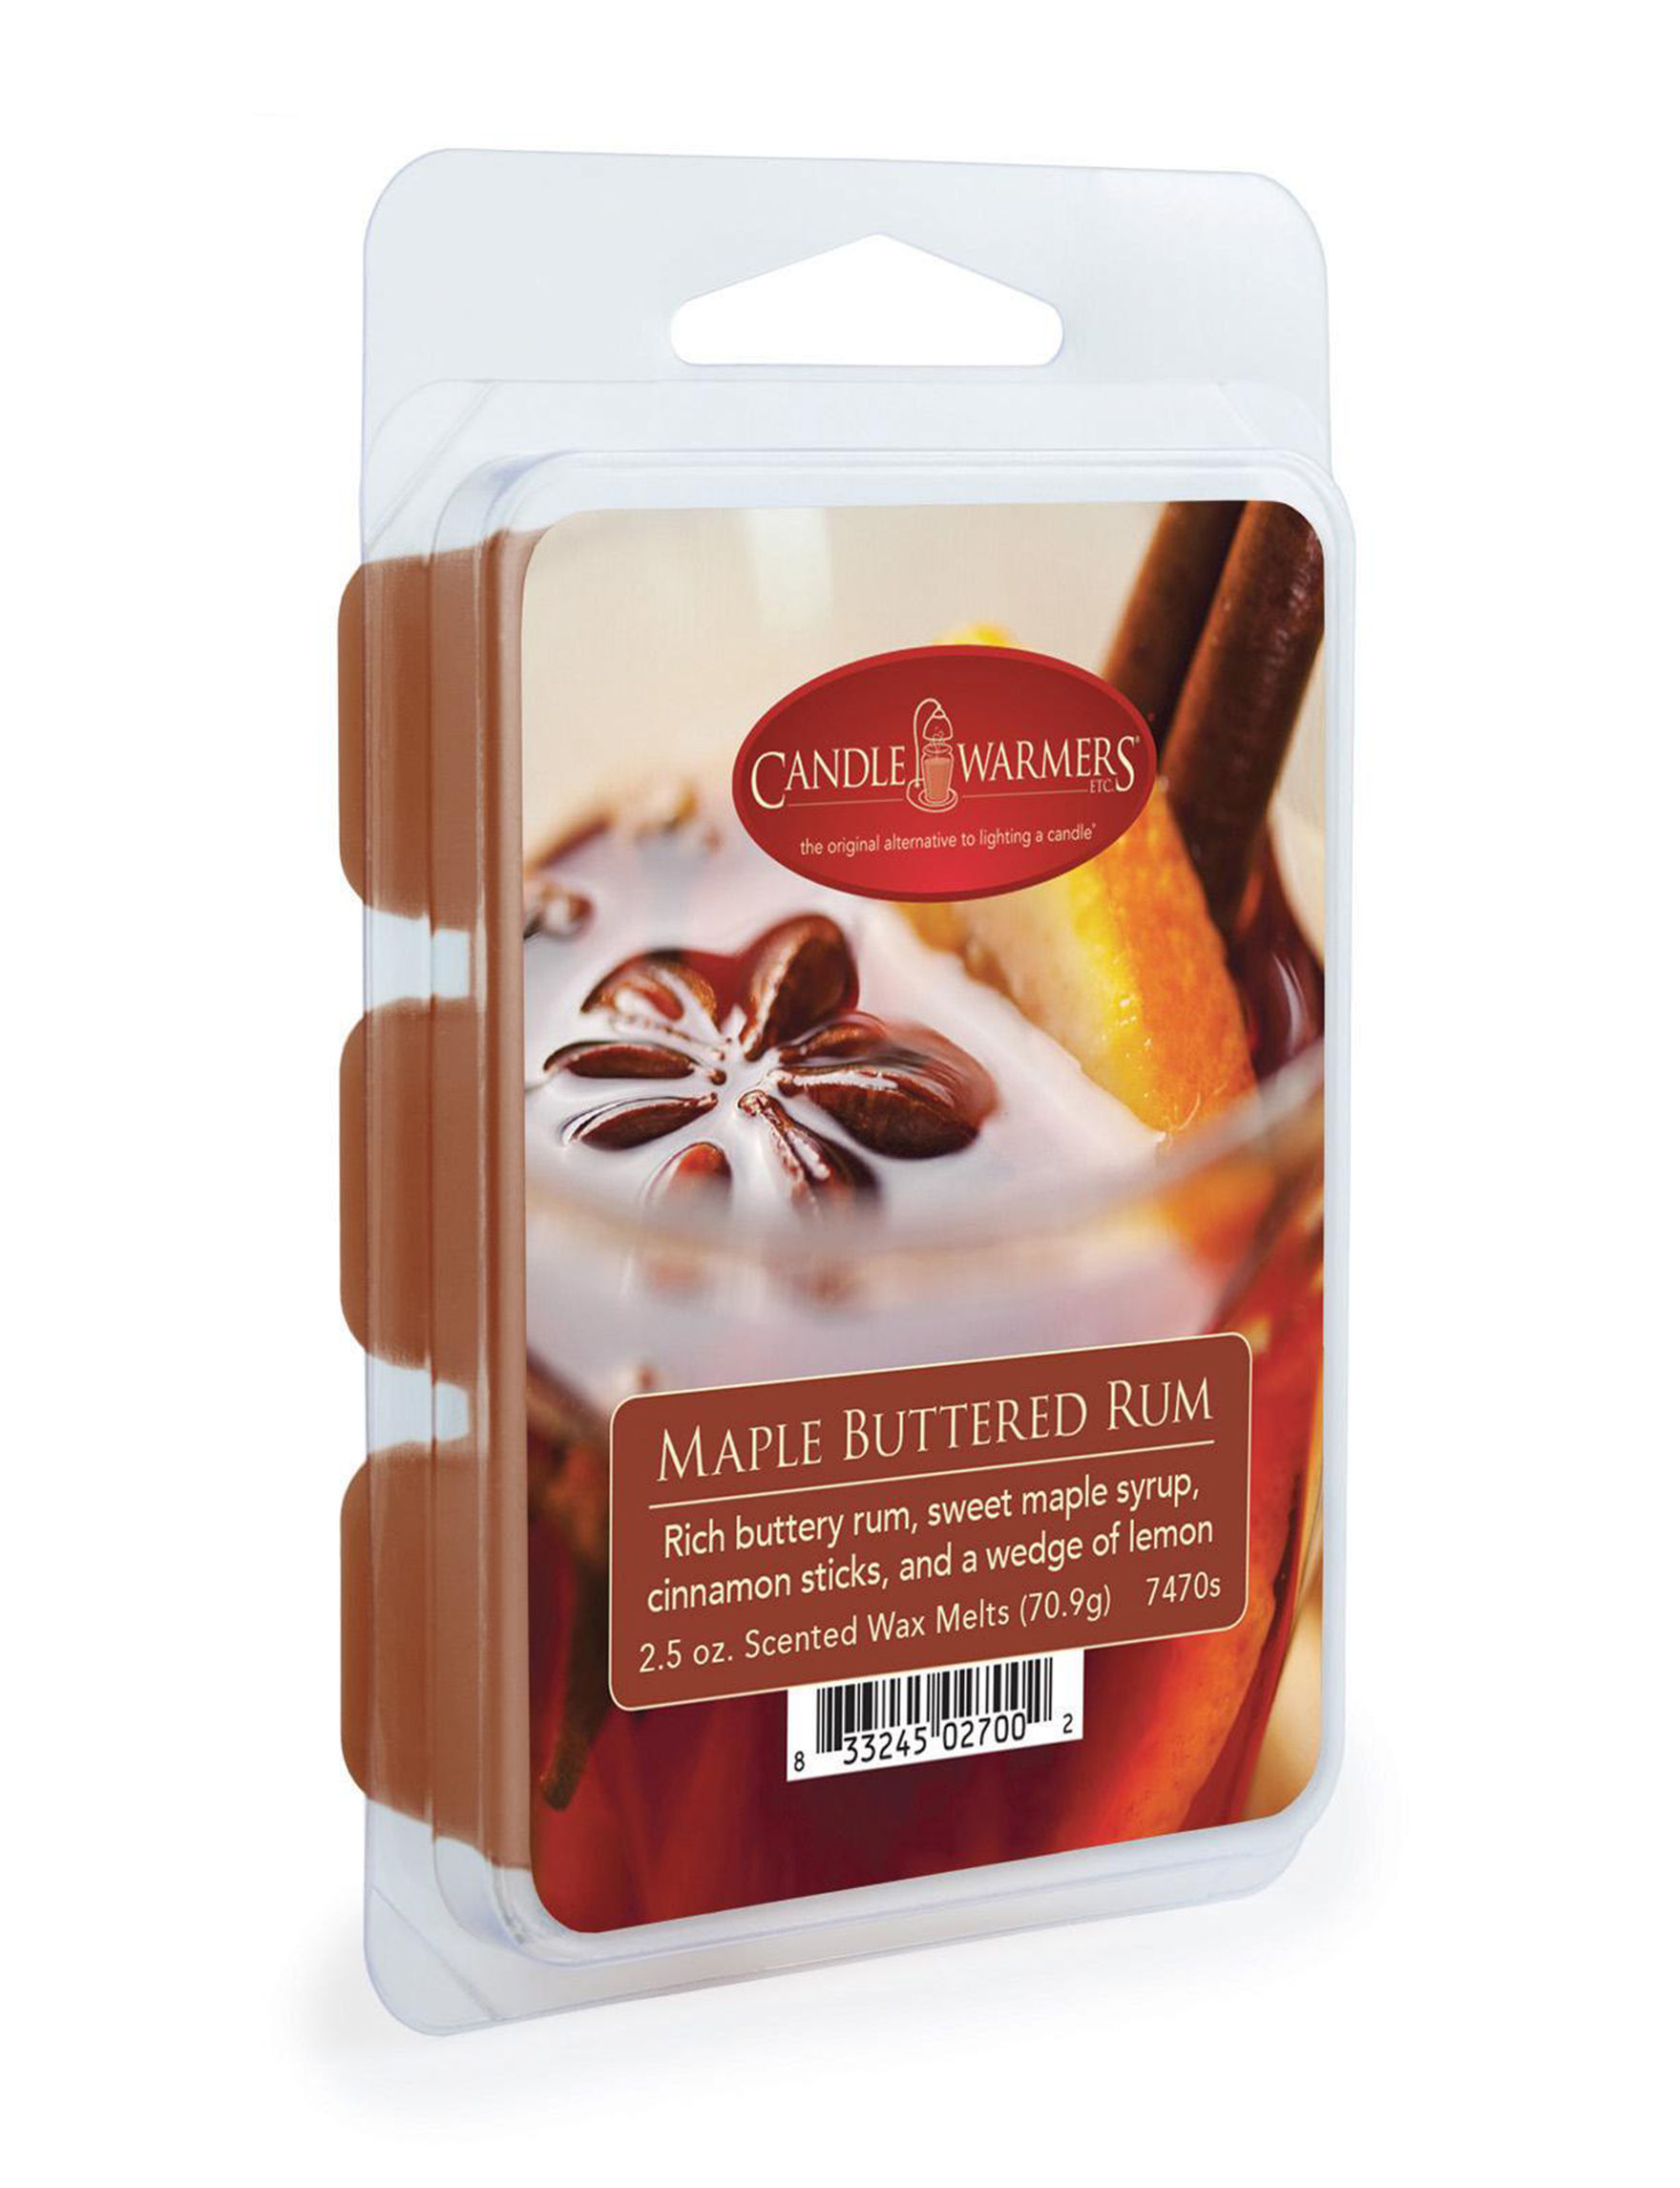 Candle Warmers Brown Wax Melts & Oils Candles & Diffusers